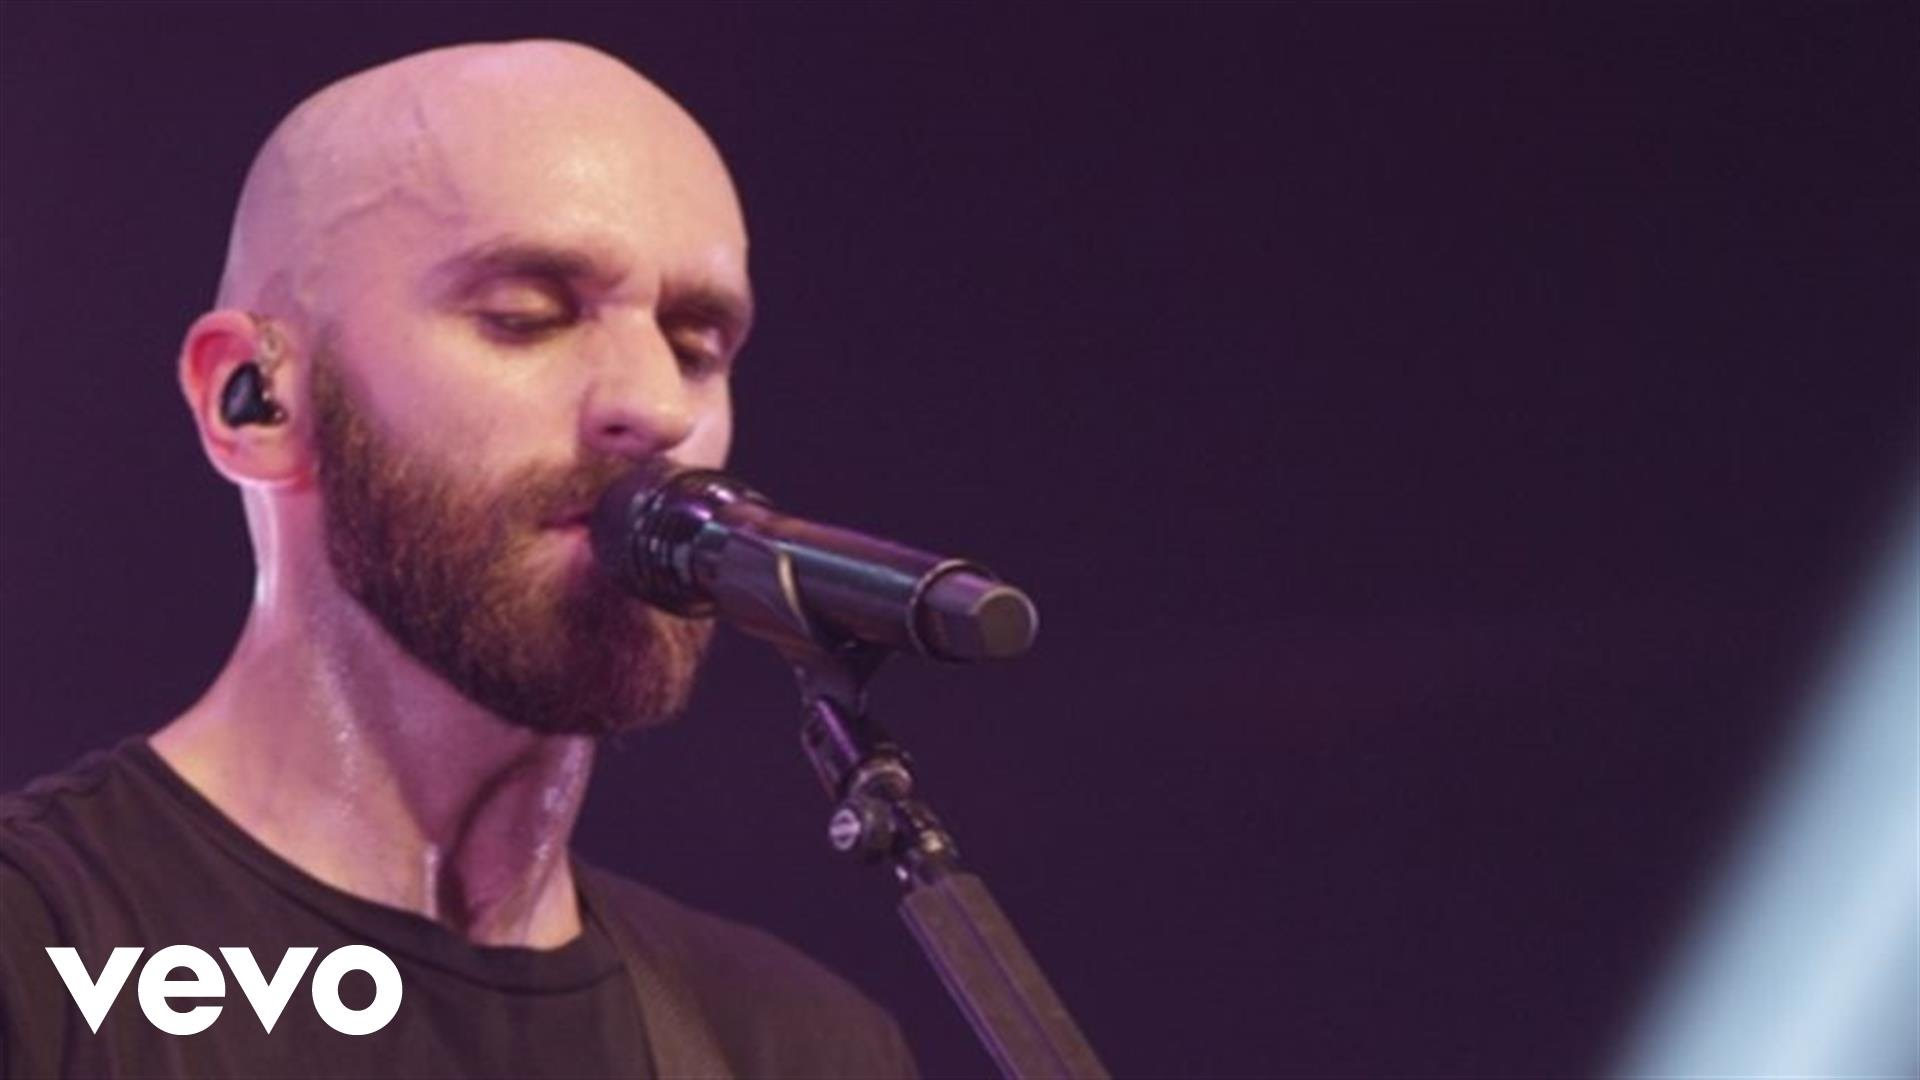 Top 10 best X Ambassadors songs